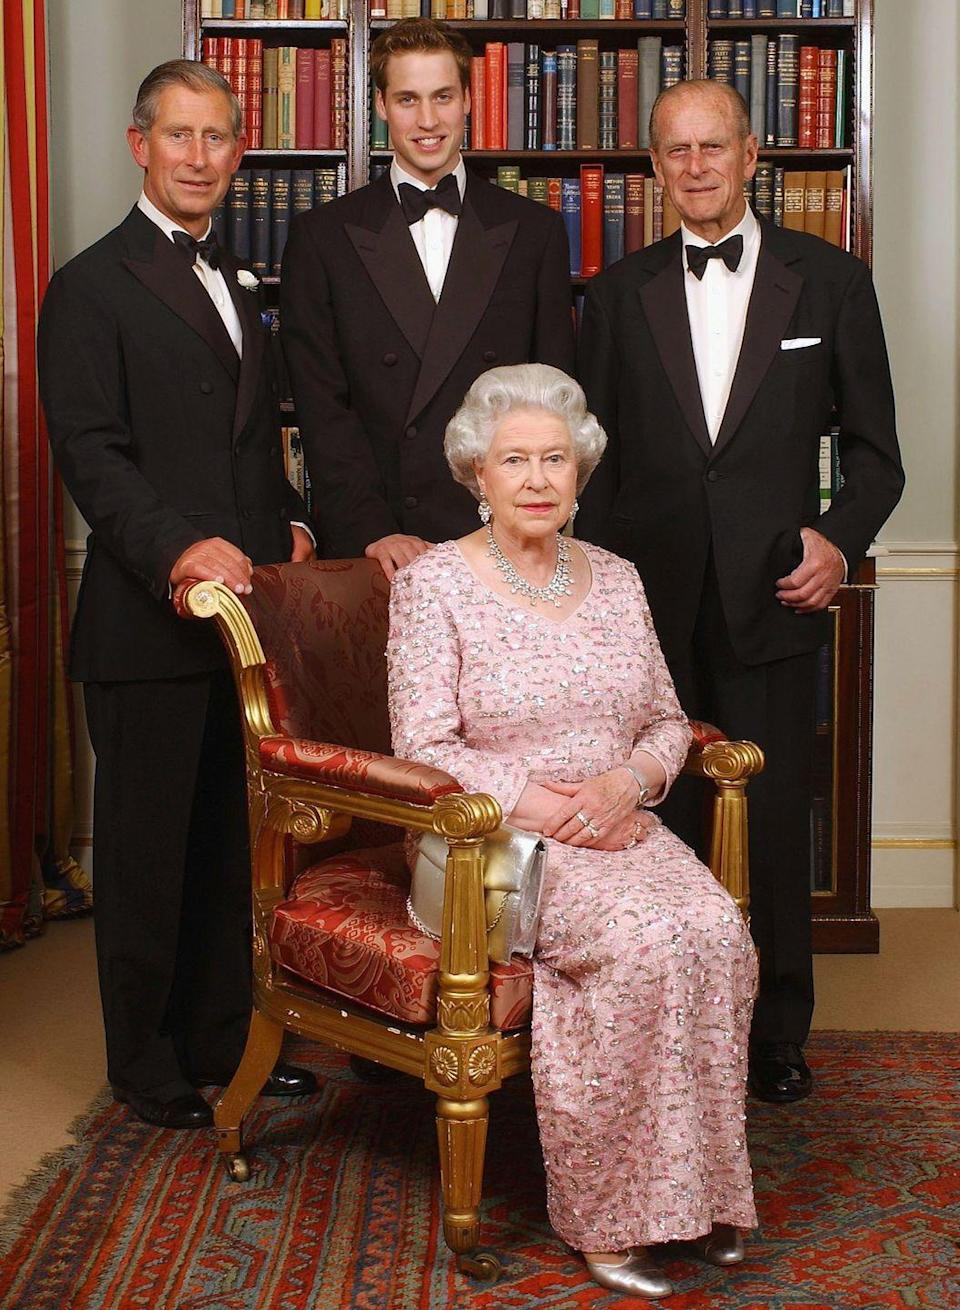 <p>In 2003, the Queen posed for a photo with Prince Philip, Prince Charles, and Prince William in honor of the 50th anniversary of the Queen's coronation. The Queen chose a pale pink dress with dazzling details, worn with a diamond necklace.</p>